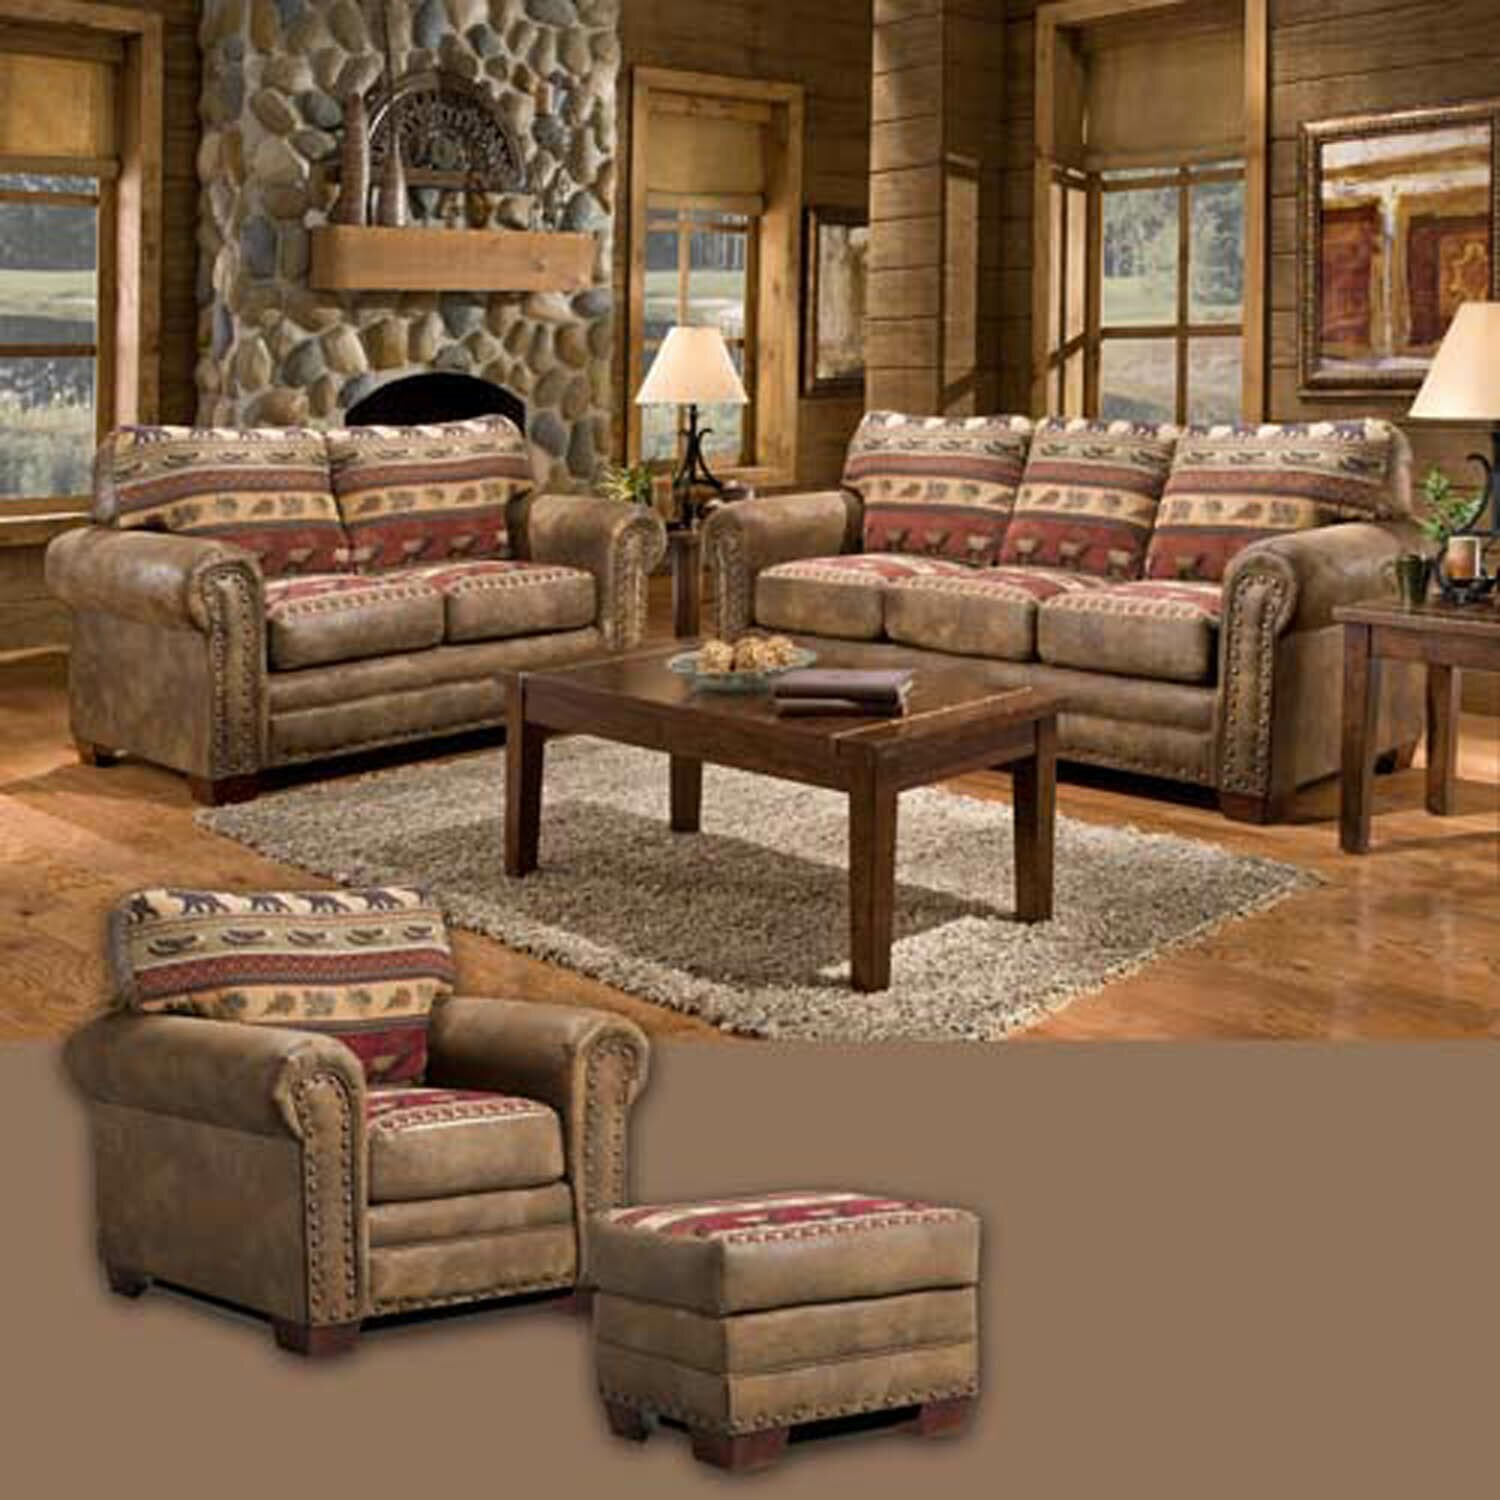 American furniture classics sierra lodge 4 piece living for 4 piece living room set